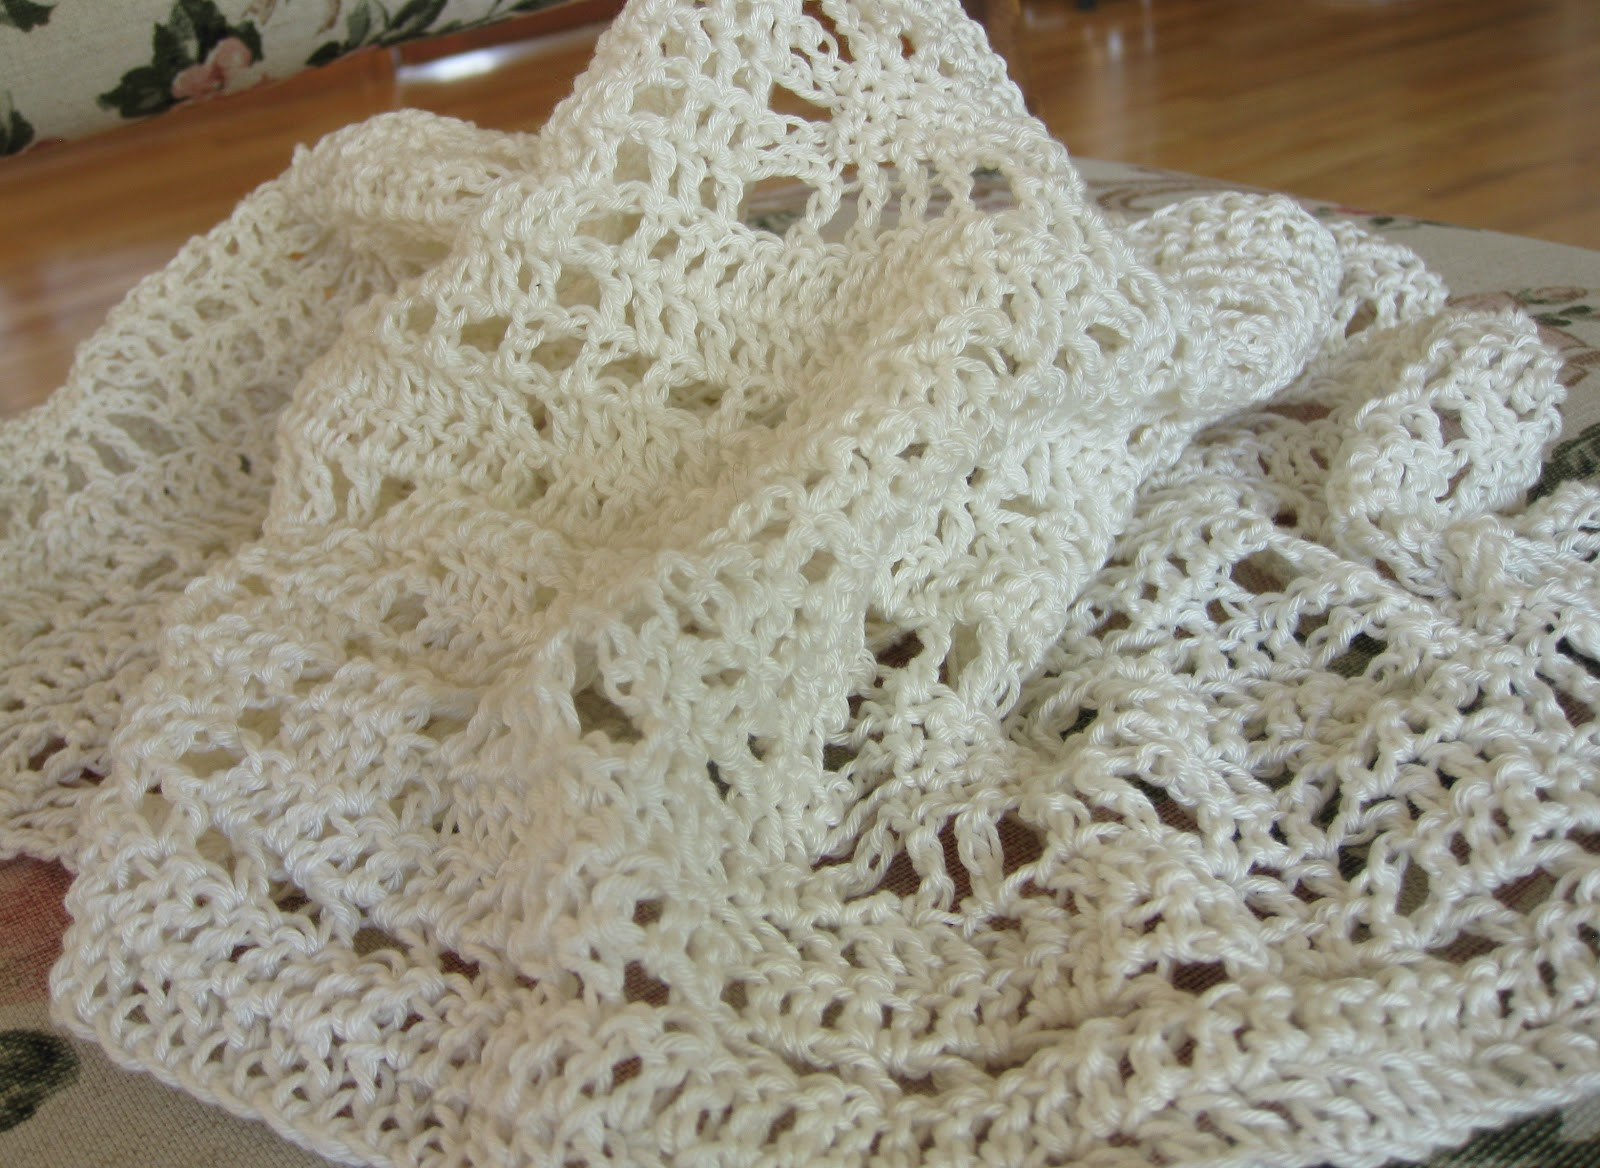 Heirloom Baby Blanket Fresh Alipyper Crochet Heirloom Baby Blanket Of Awesome 42 Ideas Heirloom Baby Blanket